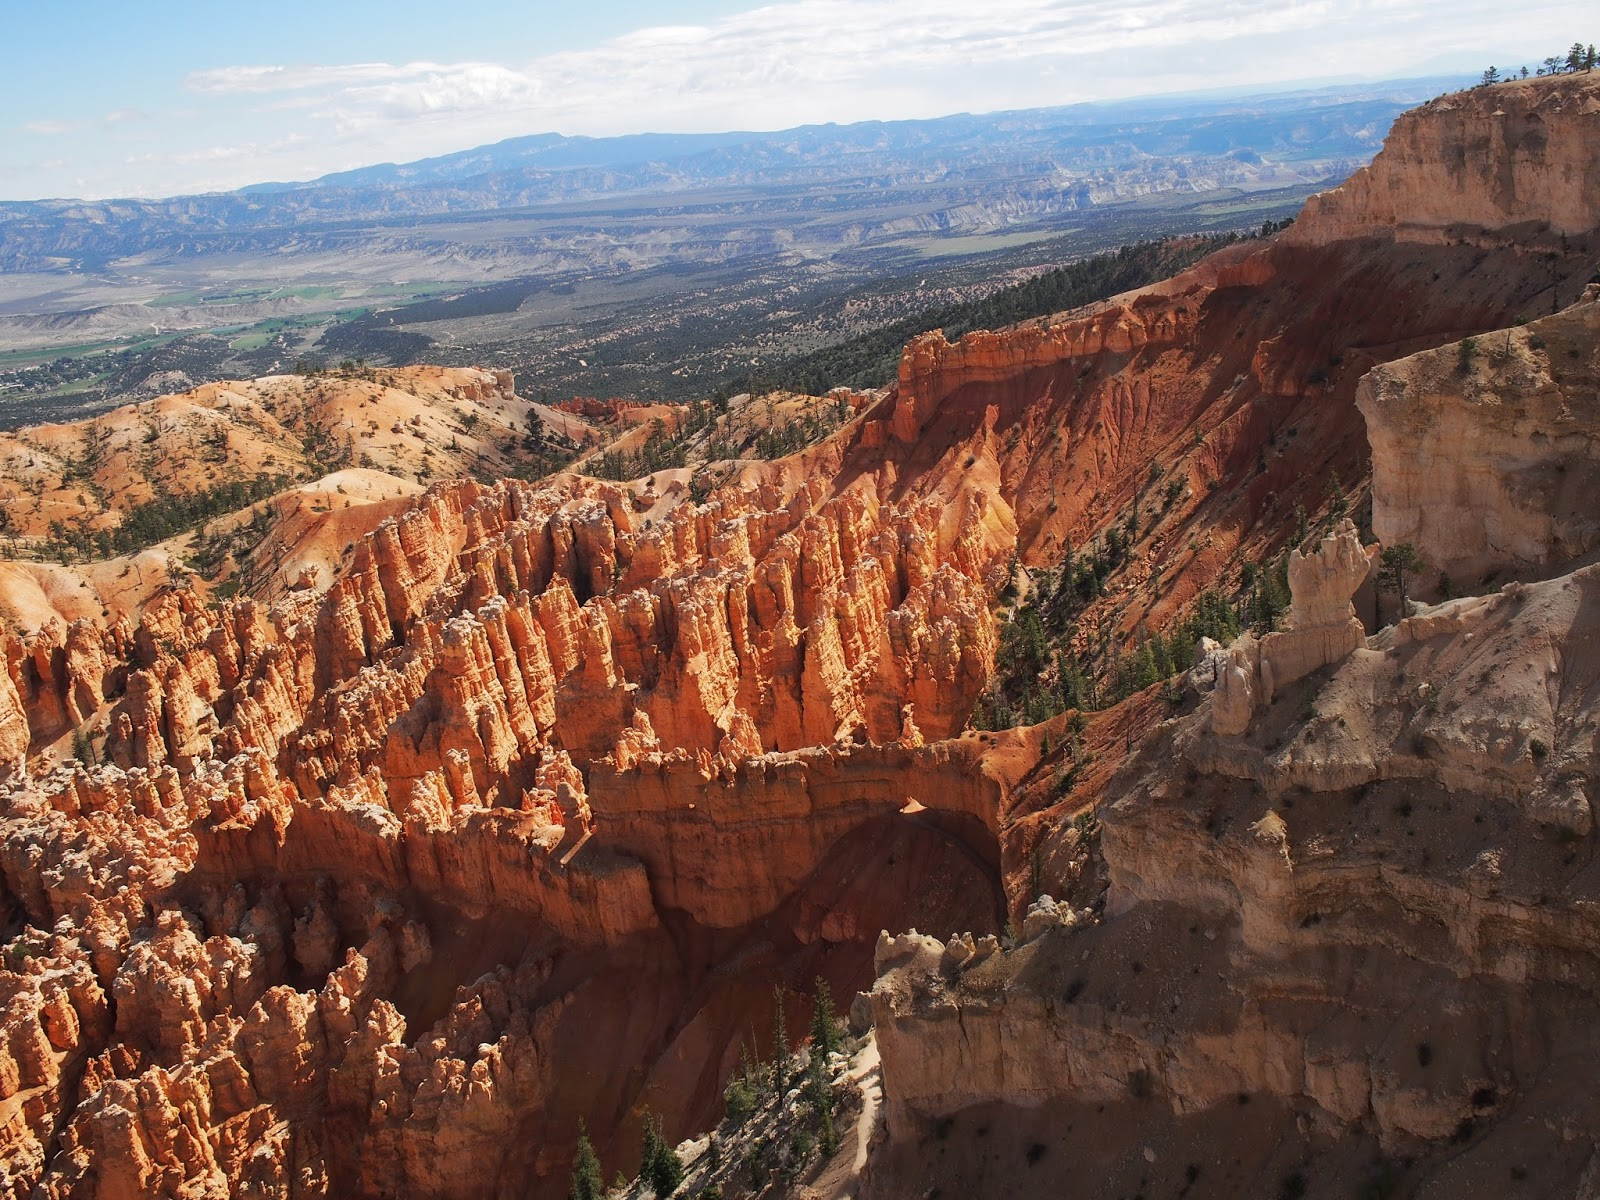 Also a View from Bryce Point, #BrycePoint #Bryce Canyon #utah #hoodoos 2014